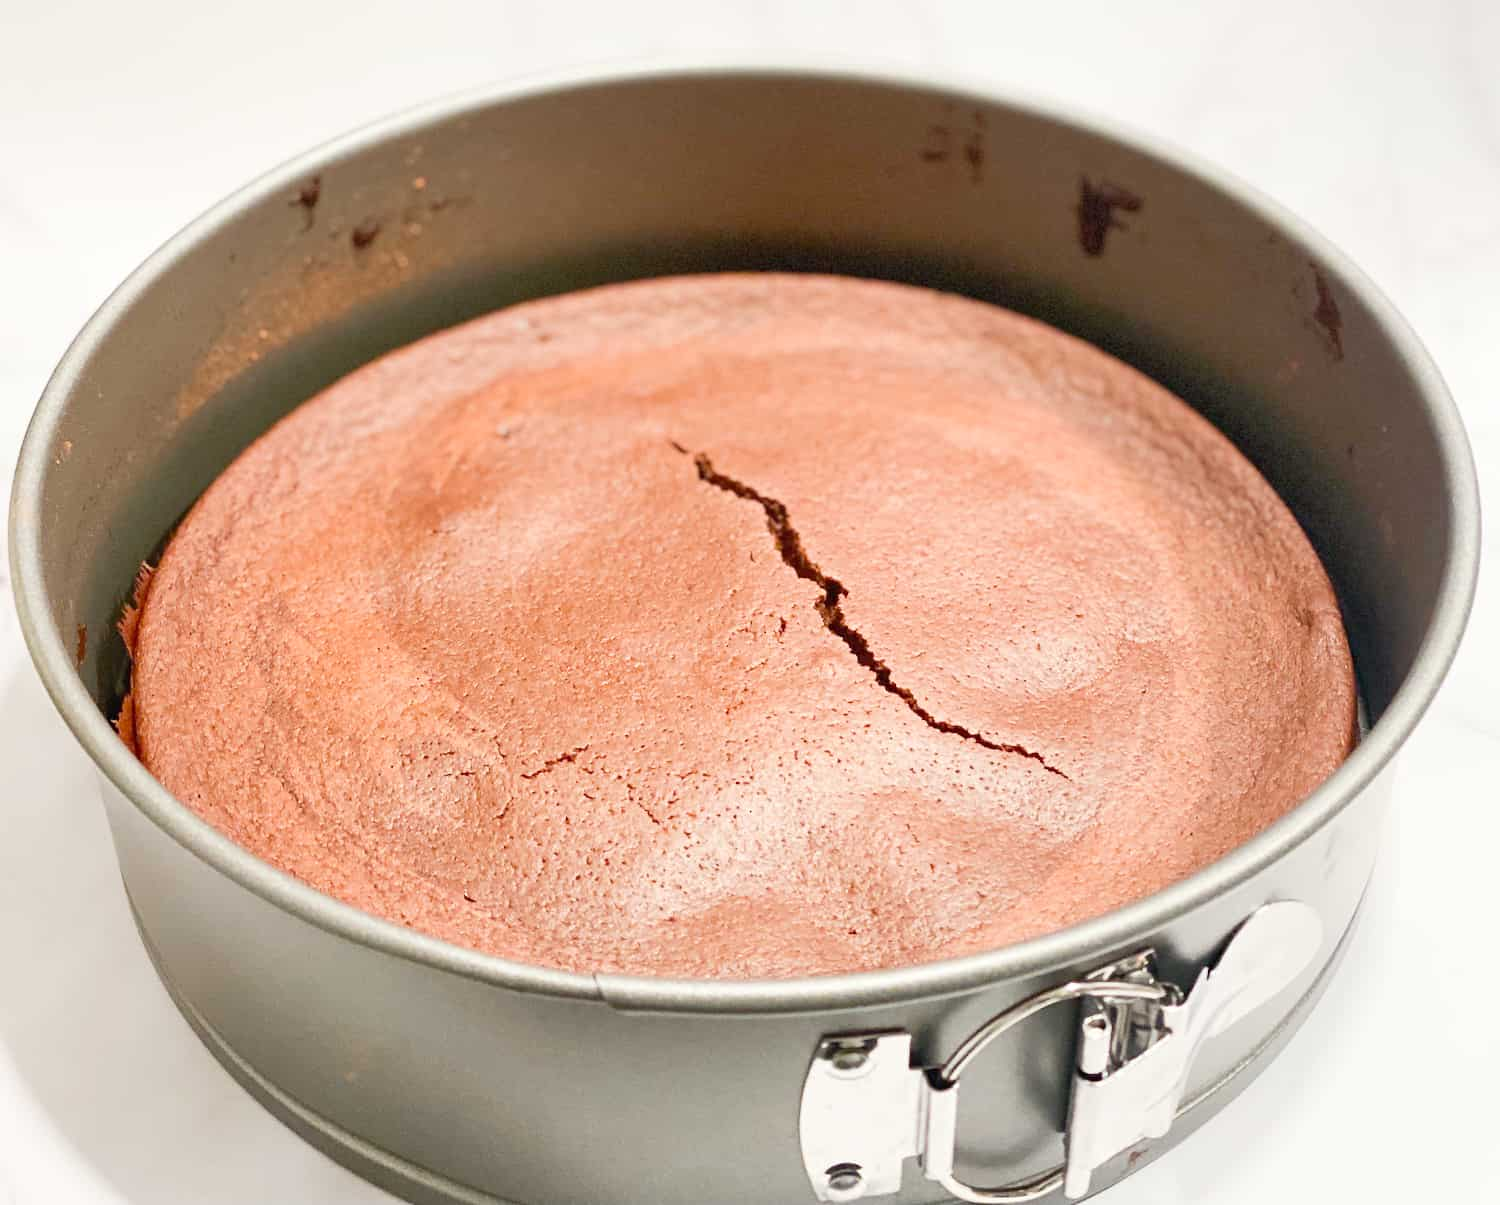 Alaskan Earthquake Cake Baked